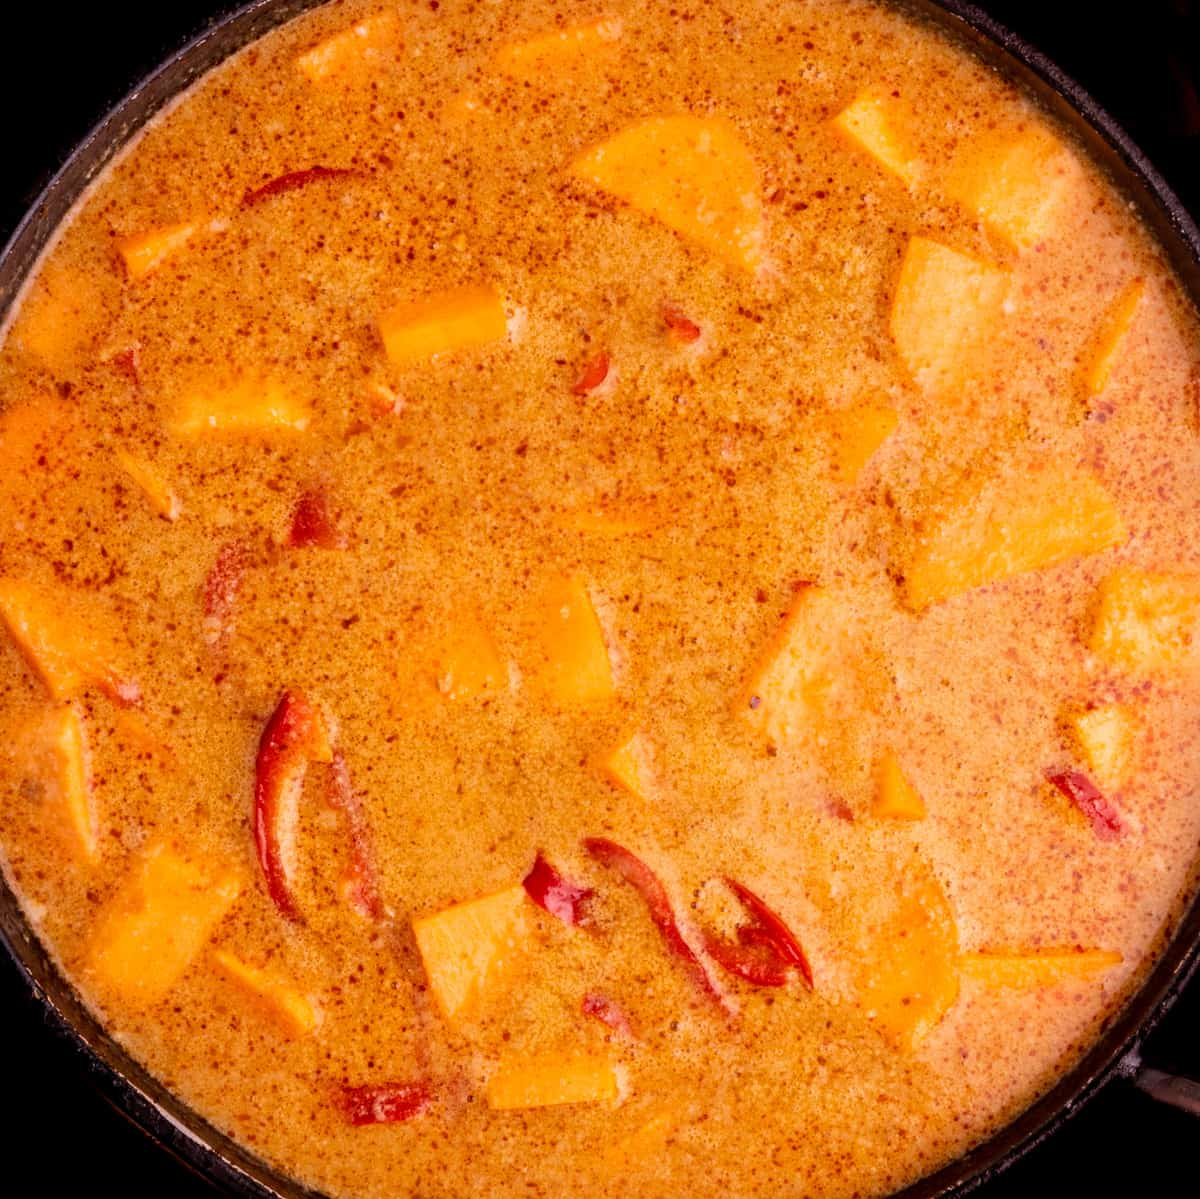 The orange red curry broth with sweet potato pieces and slices of red pepper simmering in a large frying pan.